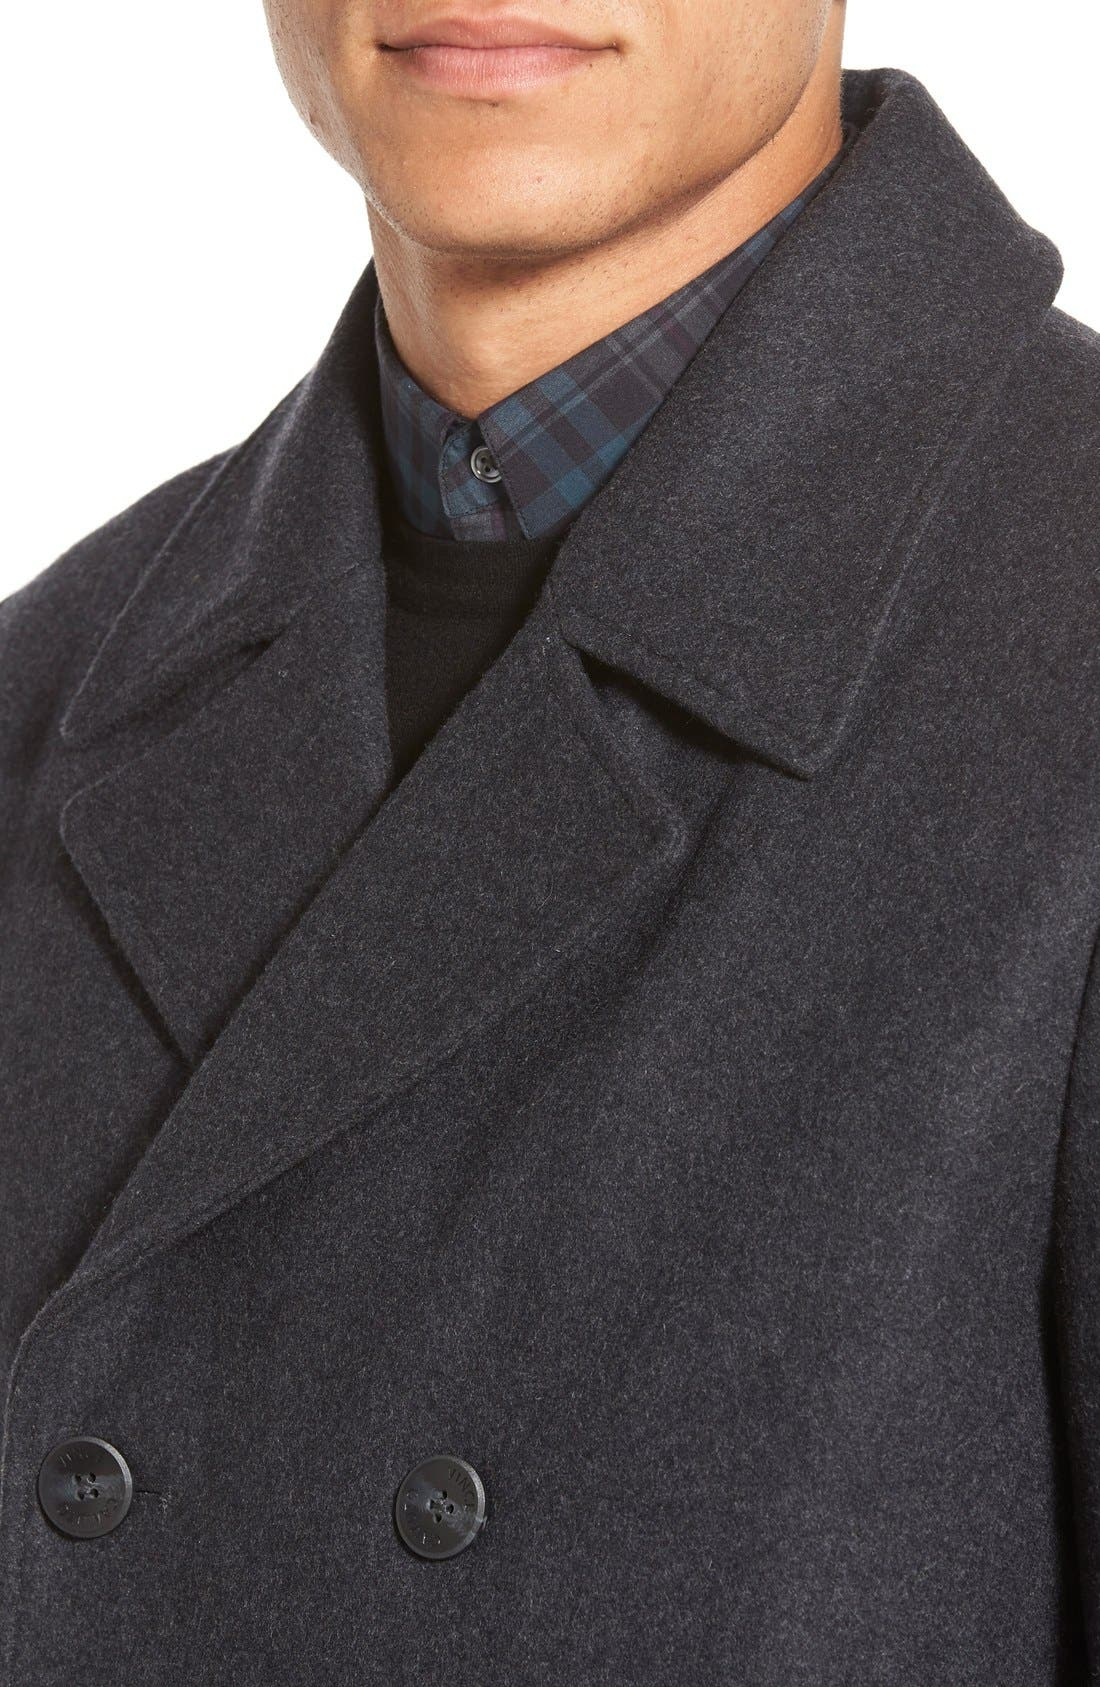 Classic Peacoat,                             Alternate thumbnail 10, color,                             CHARCOAL